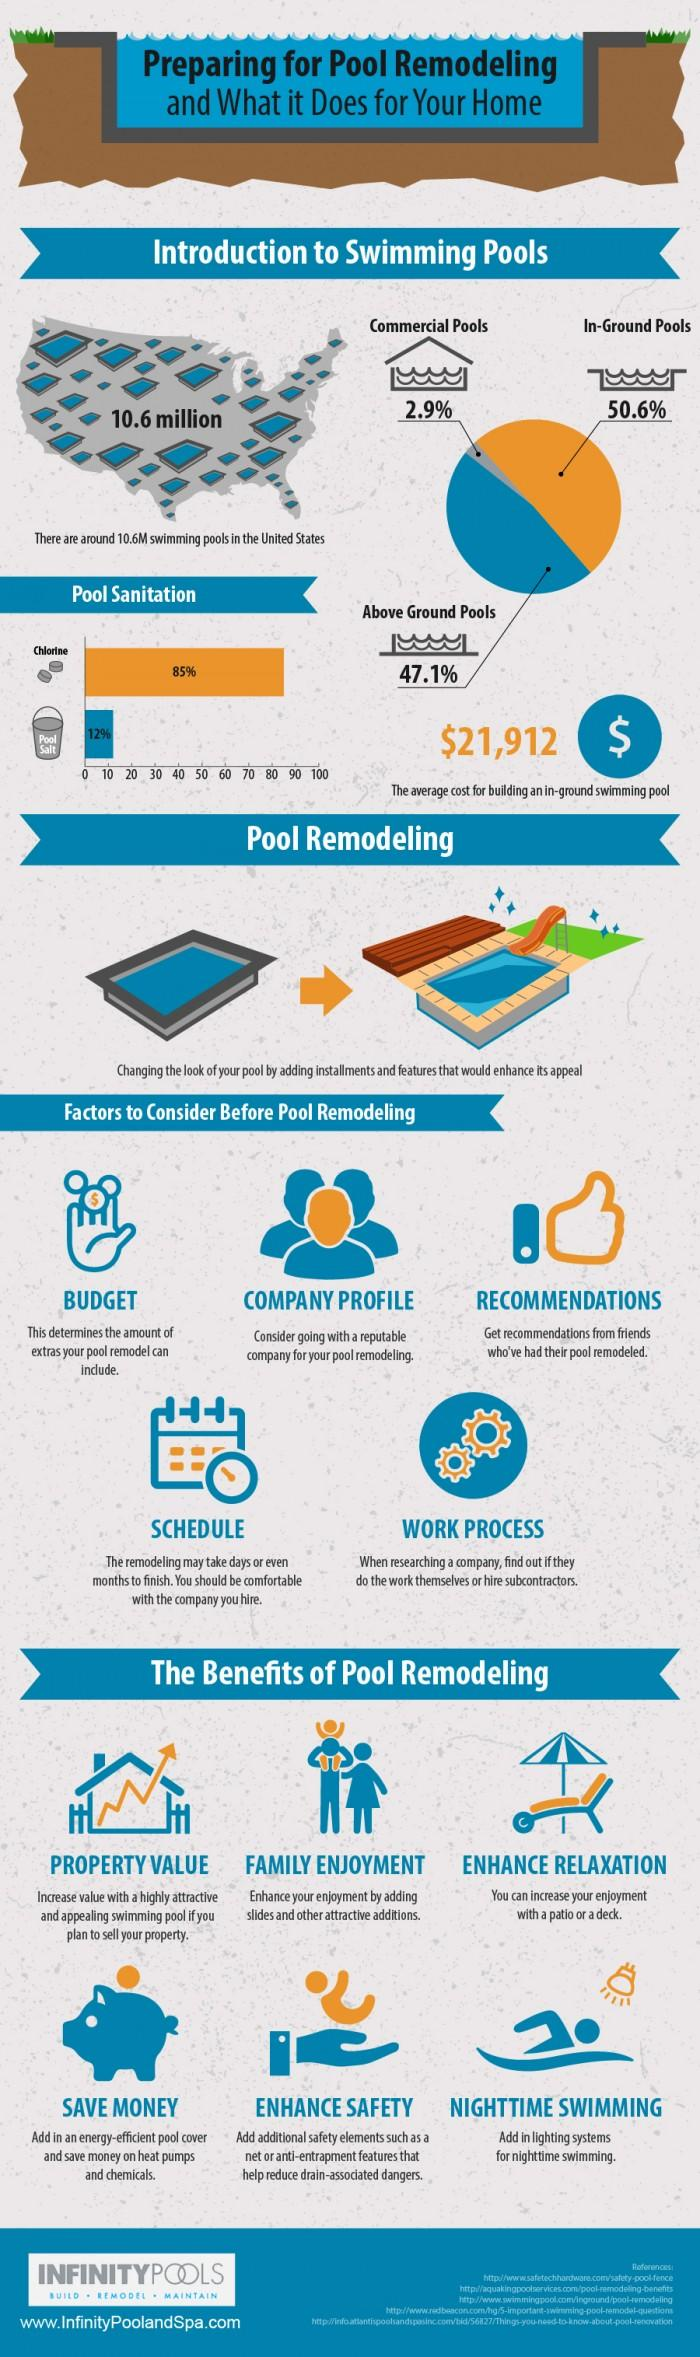 pool-remodeling-infographic-700x2357